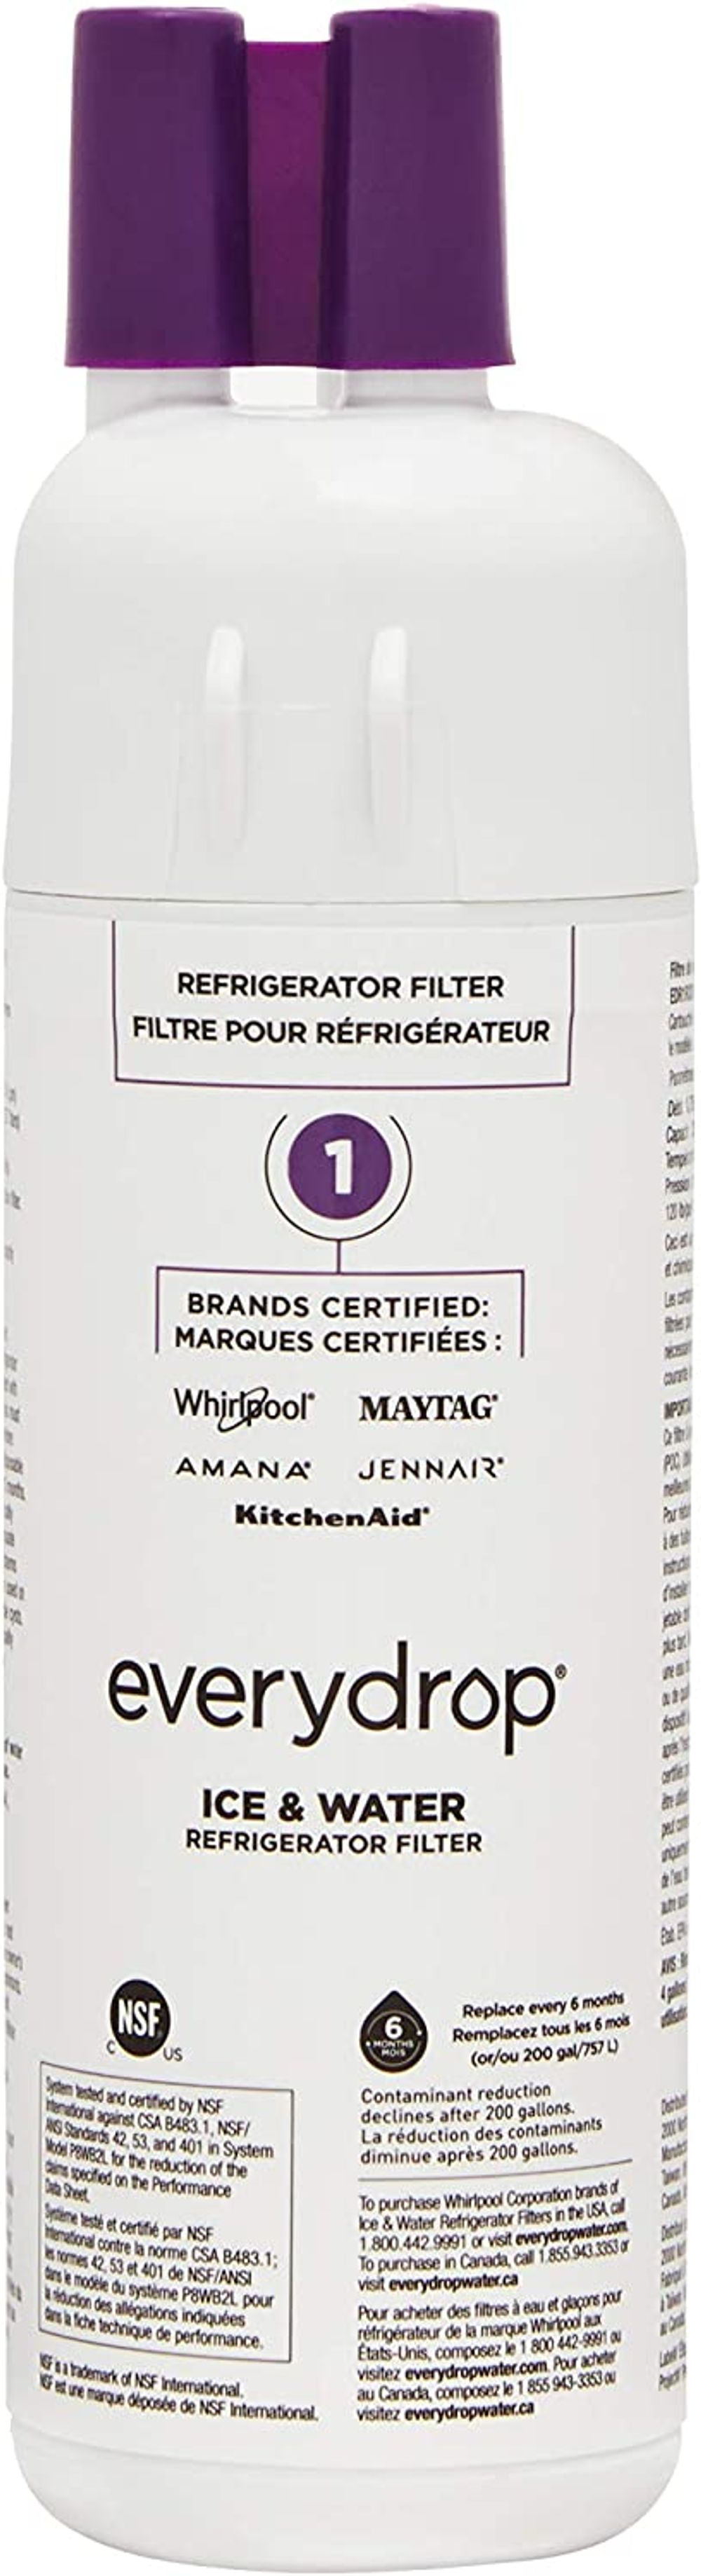 EveryDrop by Whirlpool Refrigerator Water Filter 1 (Pack of 1) (Packaging may vary) - 10383251